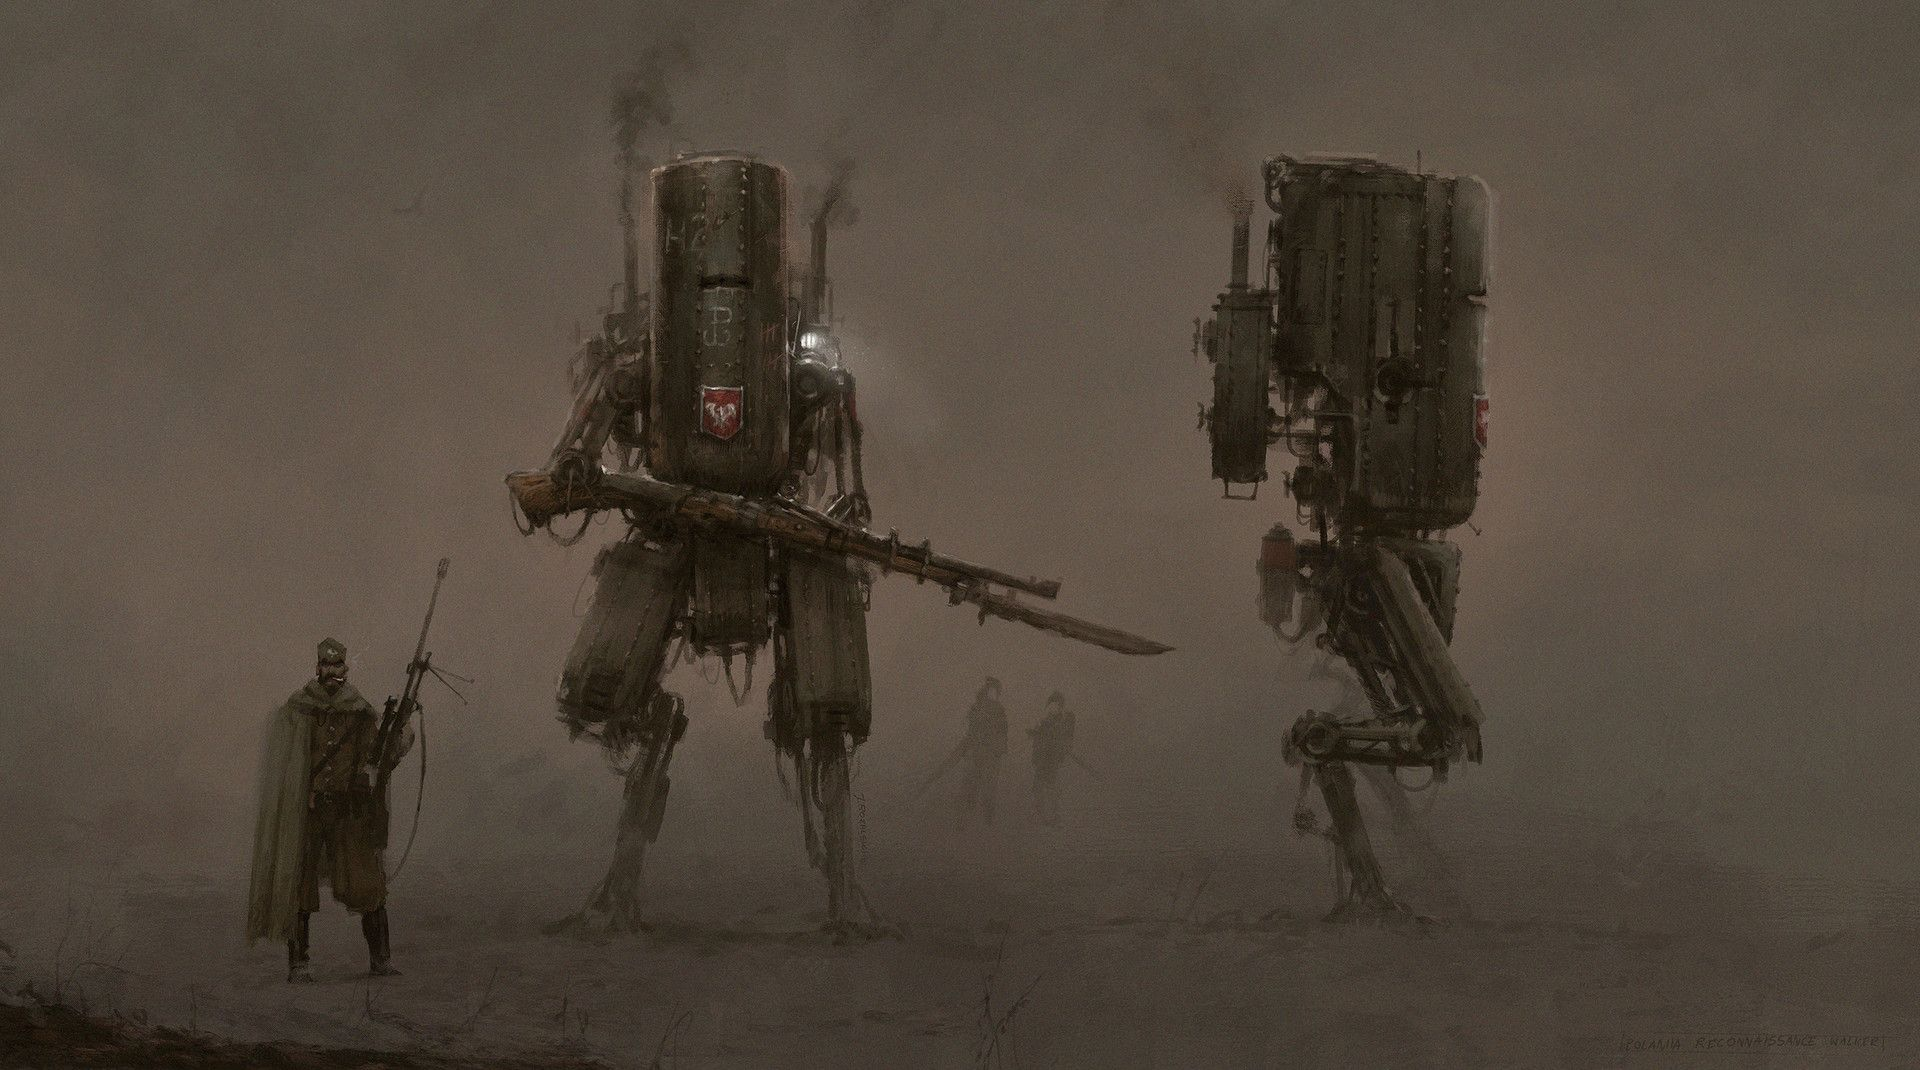 PZM - 7 Śmiały Ok, as I already announced that I'm working on a video game set in the my 1920+ world, I think I can share one of the early concept art of Polania automachine (mech) - PZM - 7 Śmiały, hope you like it, it is a light reconnaissance and fire support automachine (mech) cheers!